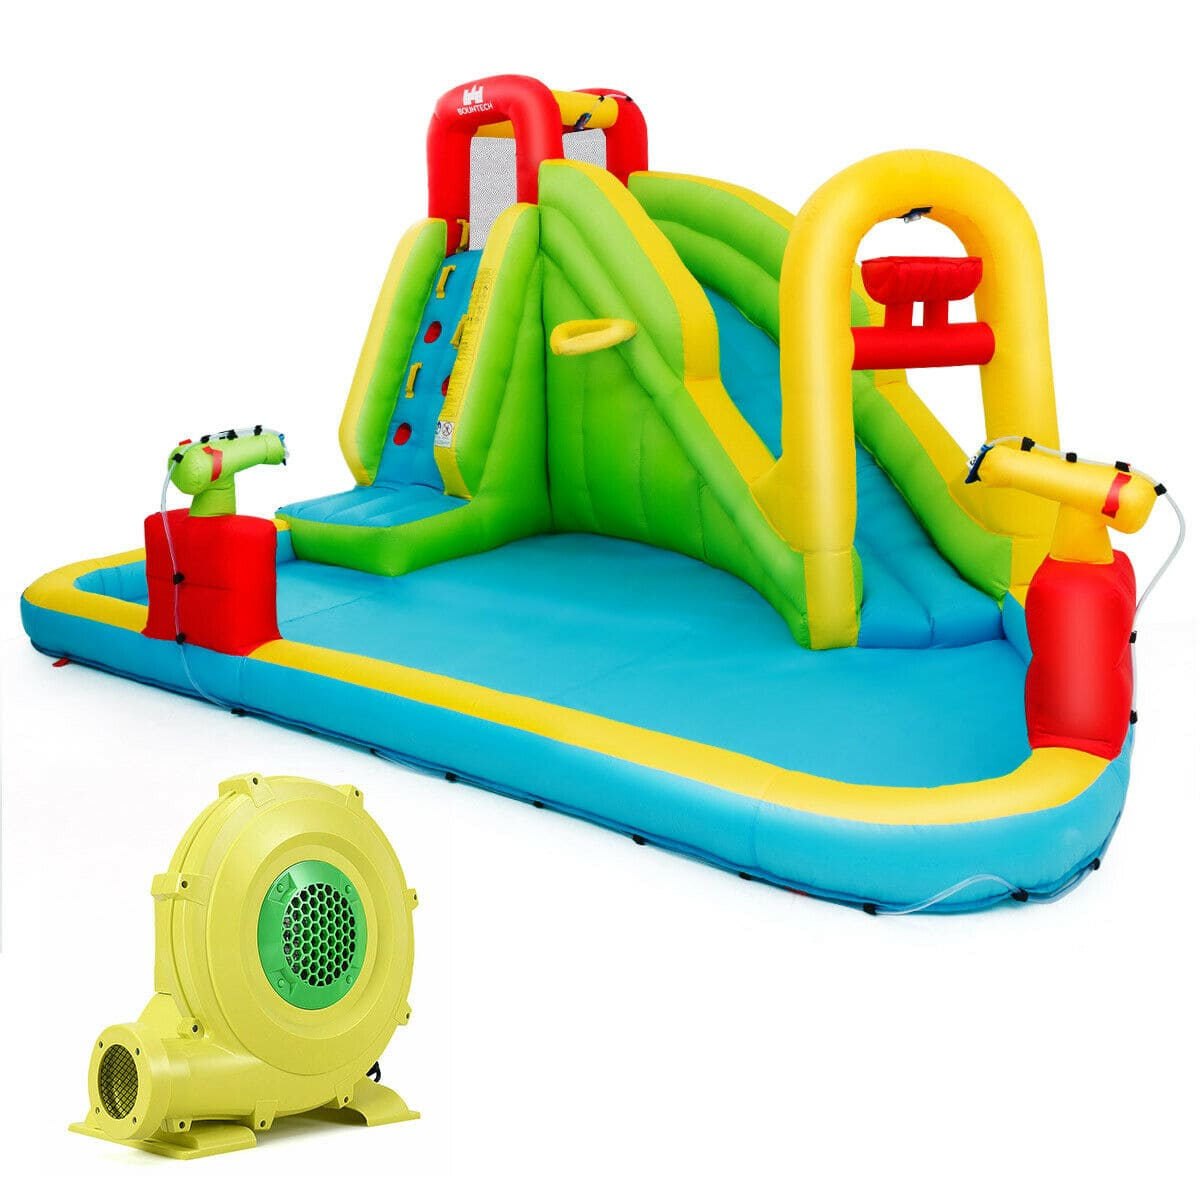 Inflatable Water Bounce House with Slide, Climbing Wall, and 480W Blower and Slide - FREE SHIPPING